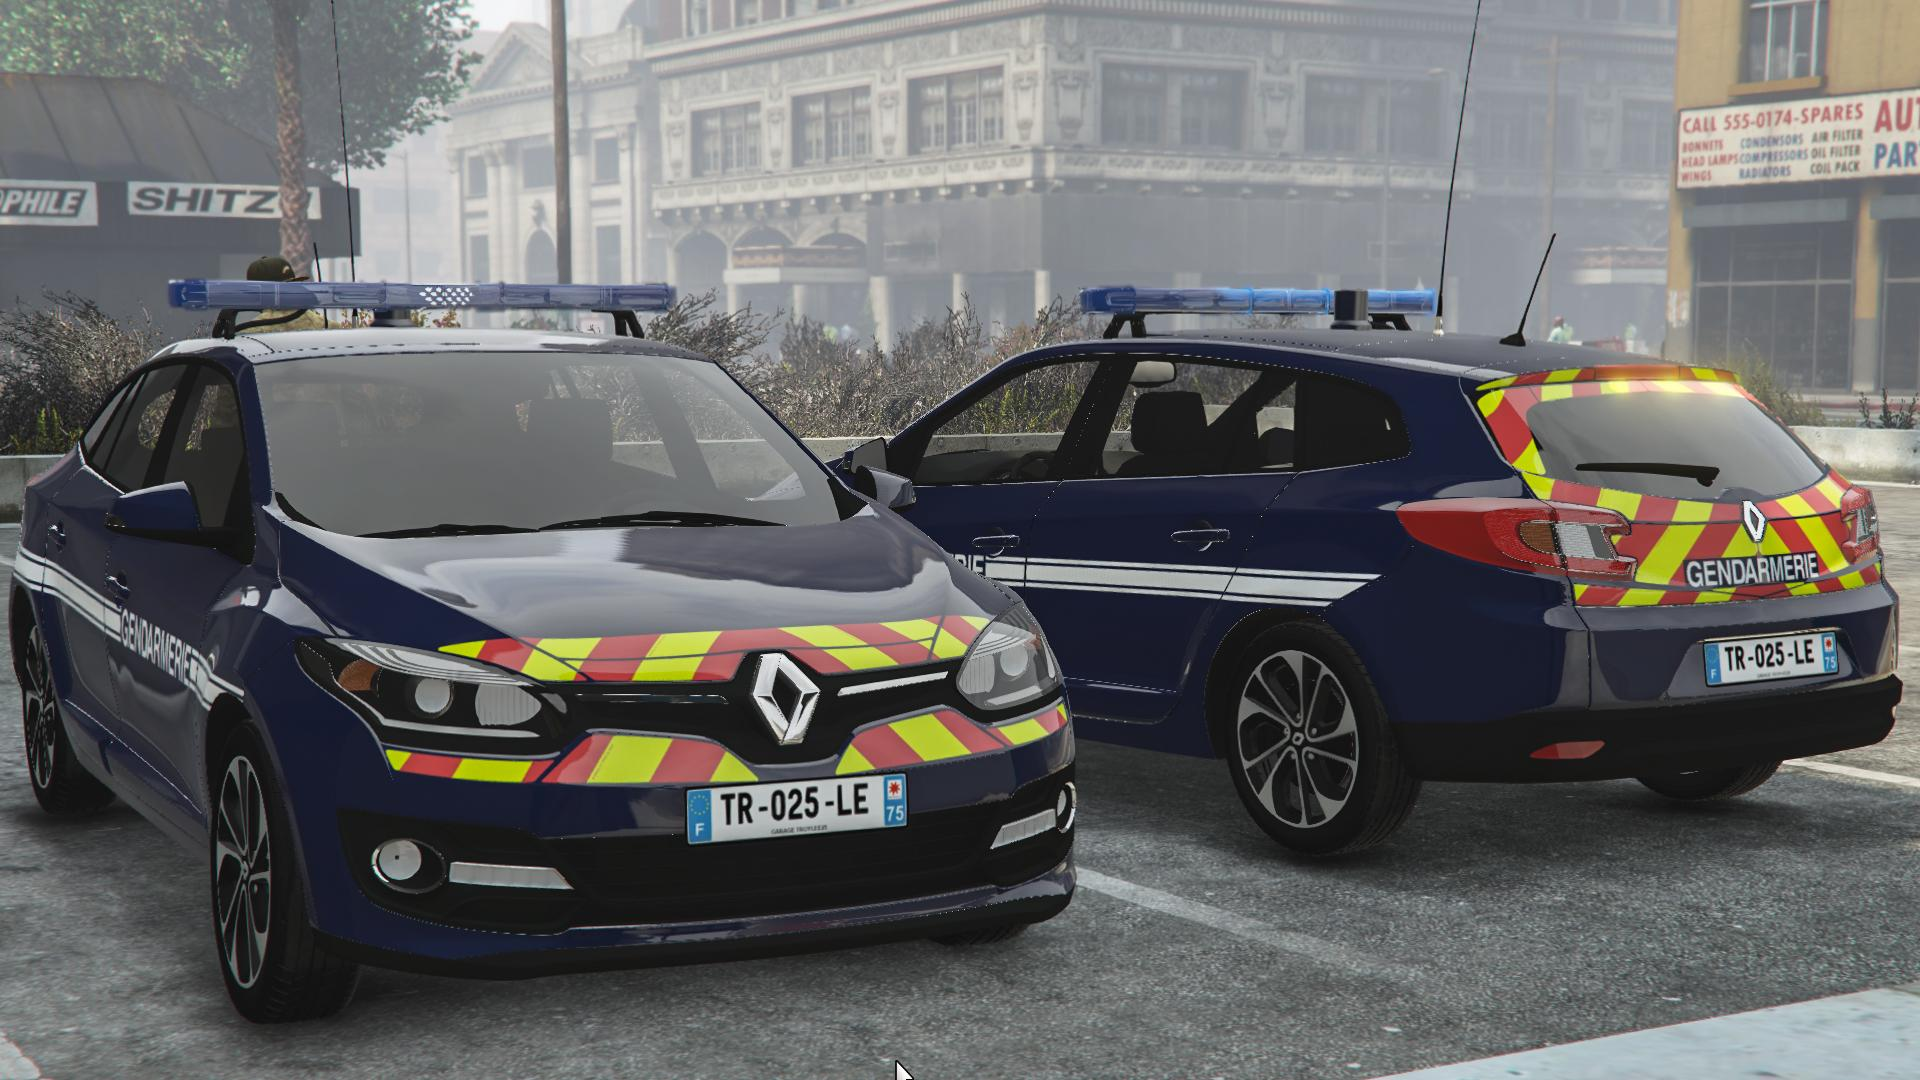 renault megane iii estate gendarmerie gta5. Black Bedroom Furniture Sets. Home Design Ideas